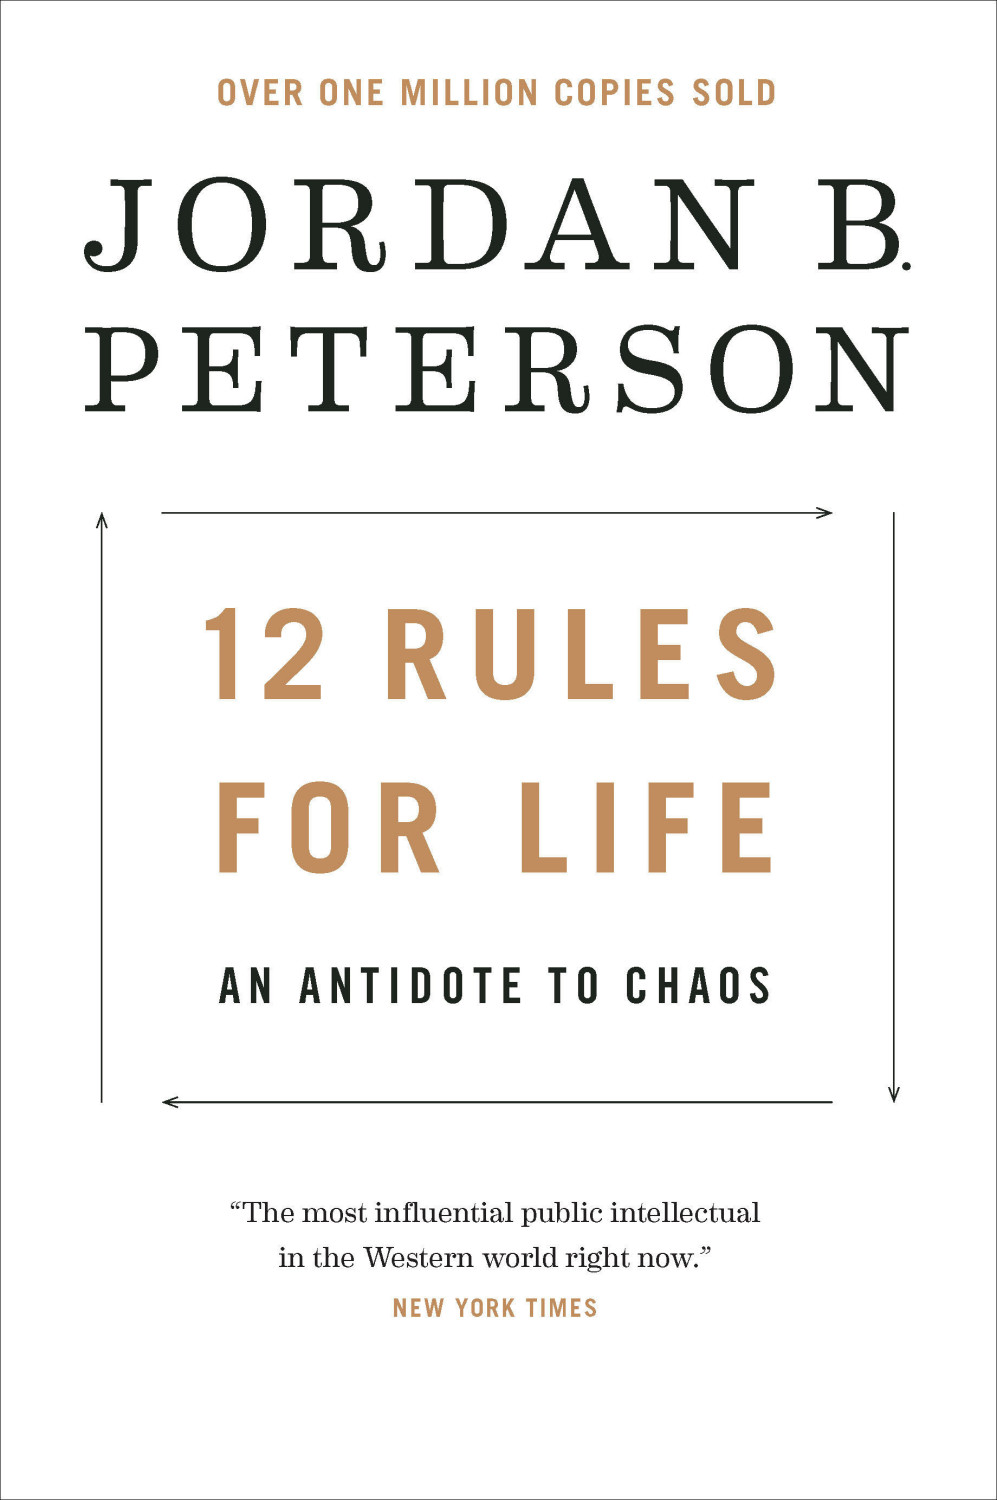 Image of 12 Rules for Life An Antidote to Chaos (Jordan B. Peterson)